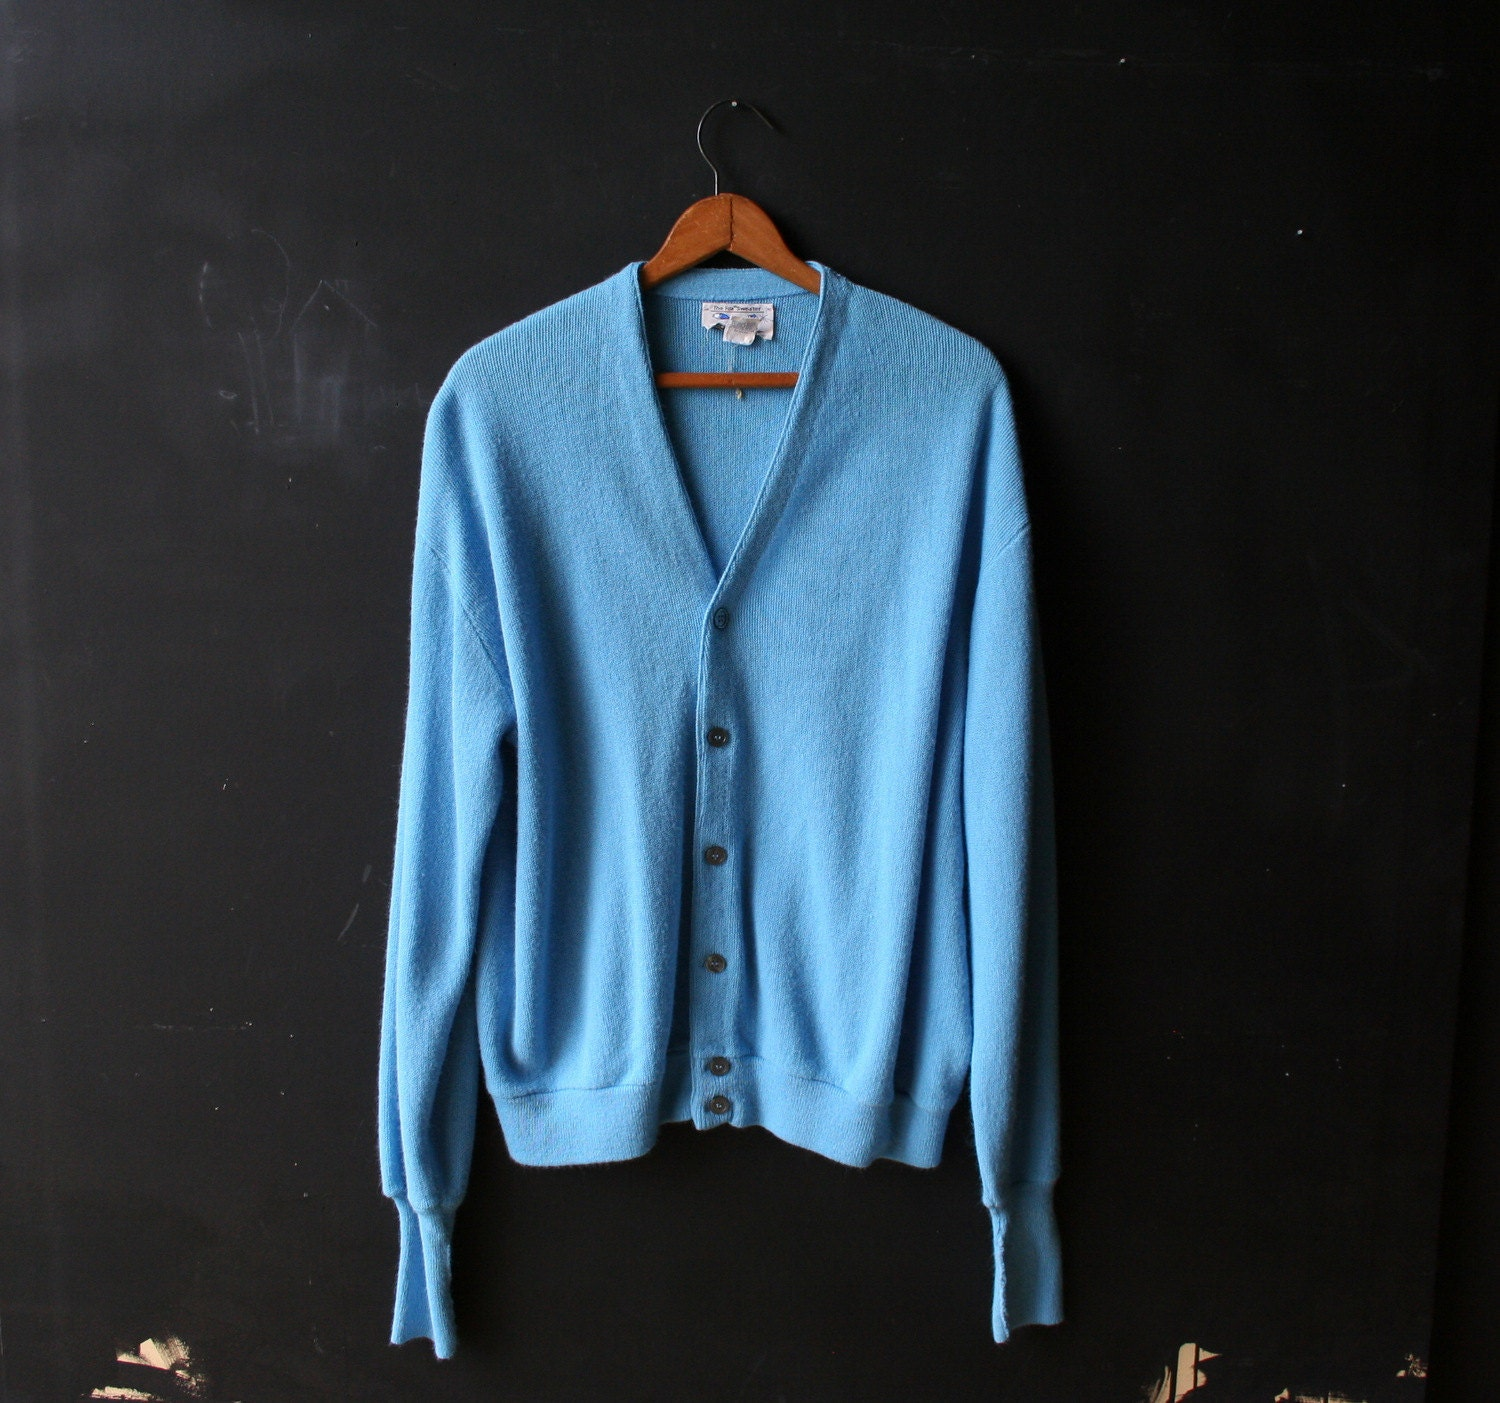 Mens Light Blue Cardigan Sweater - Cashmere Sweater England